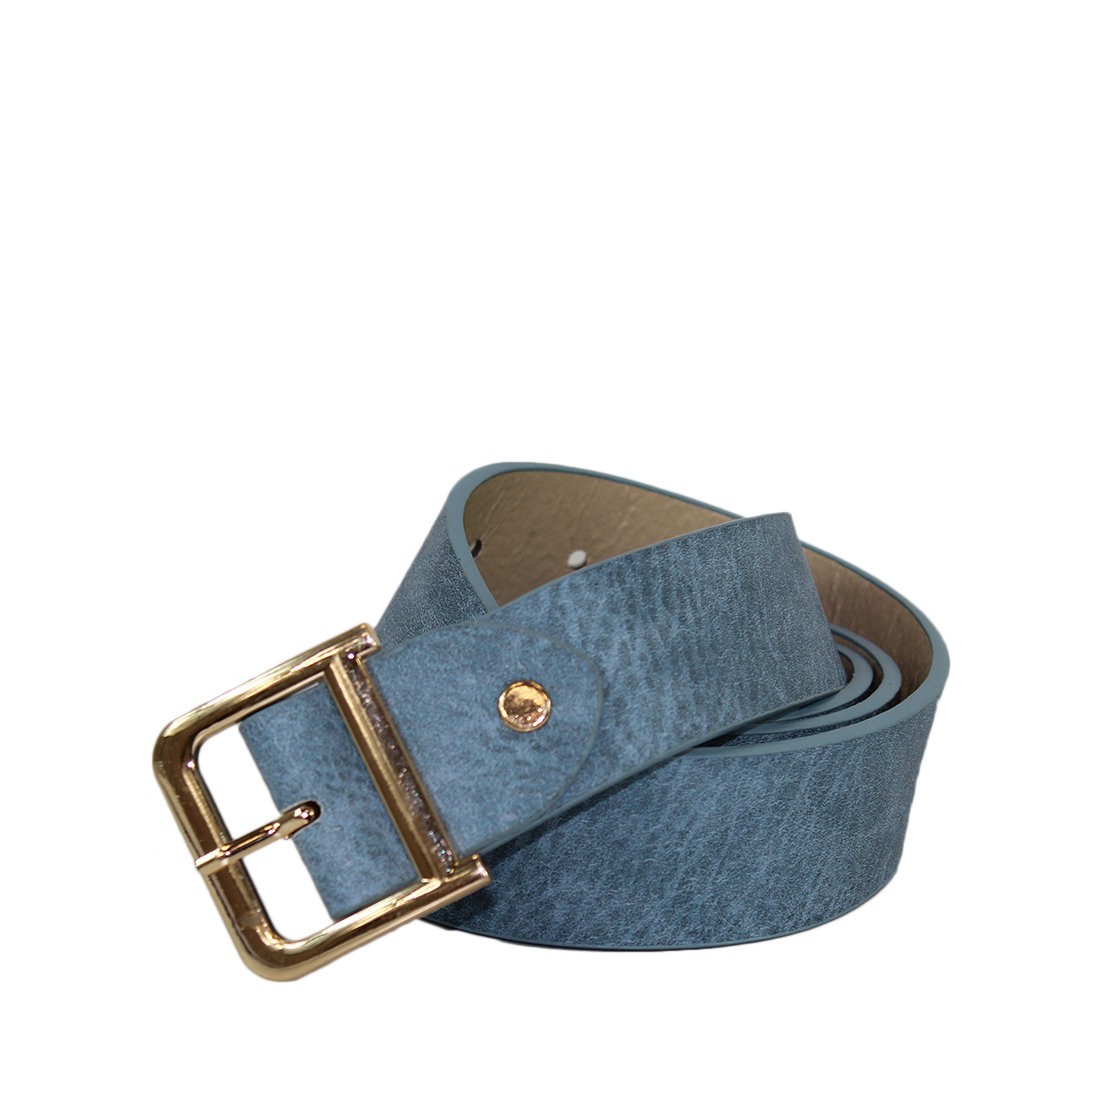 Plain with a gold buckle